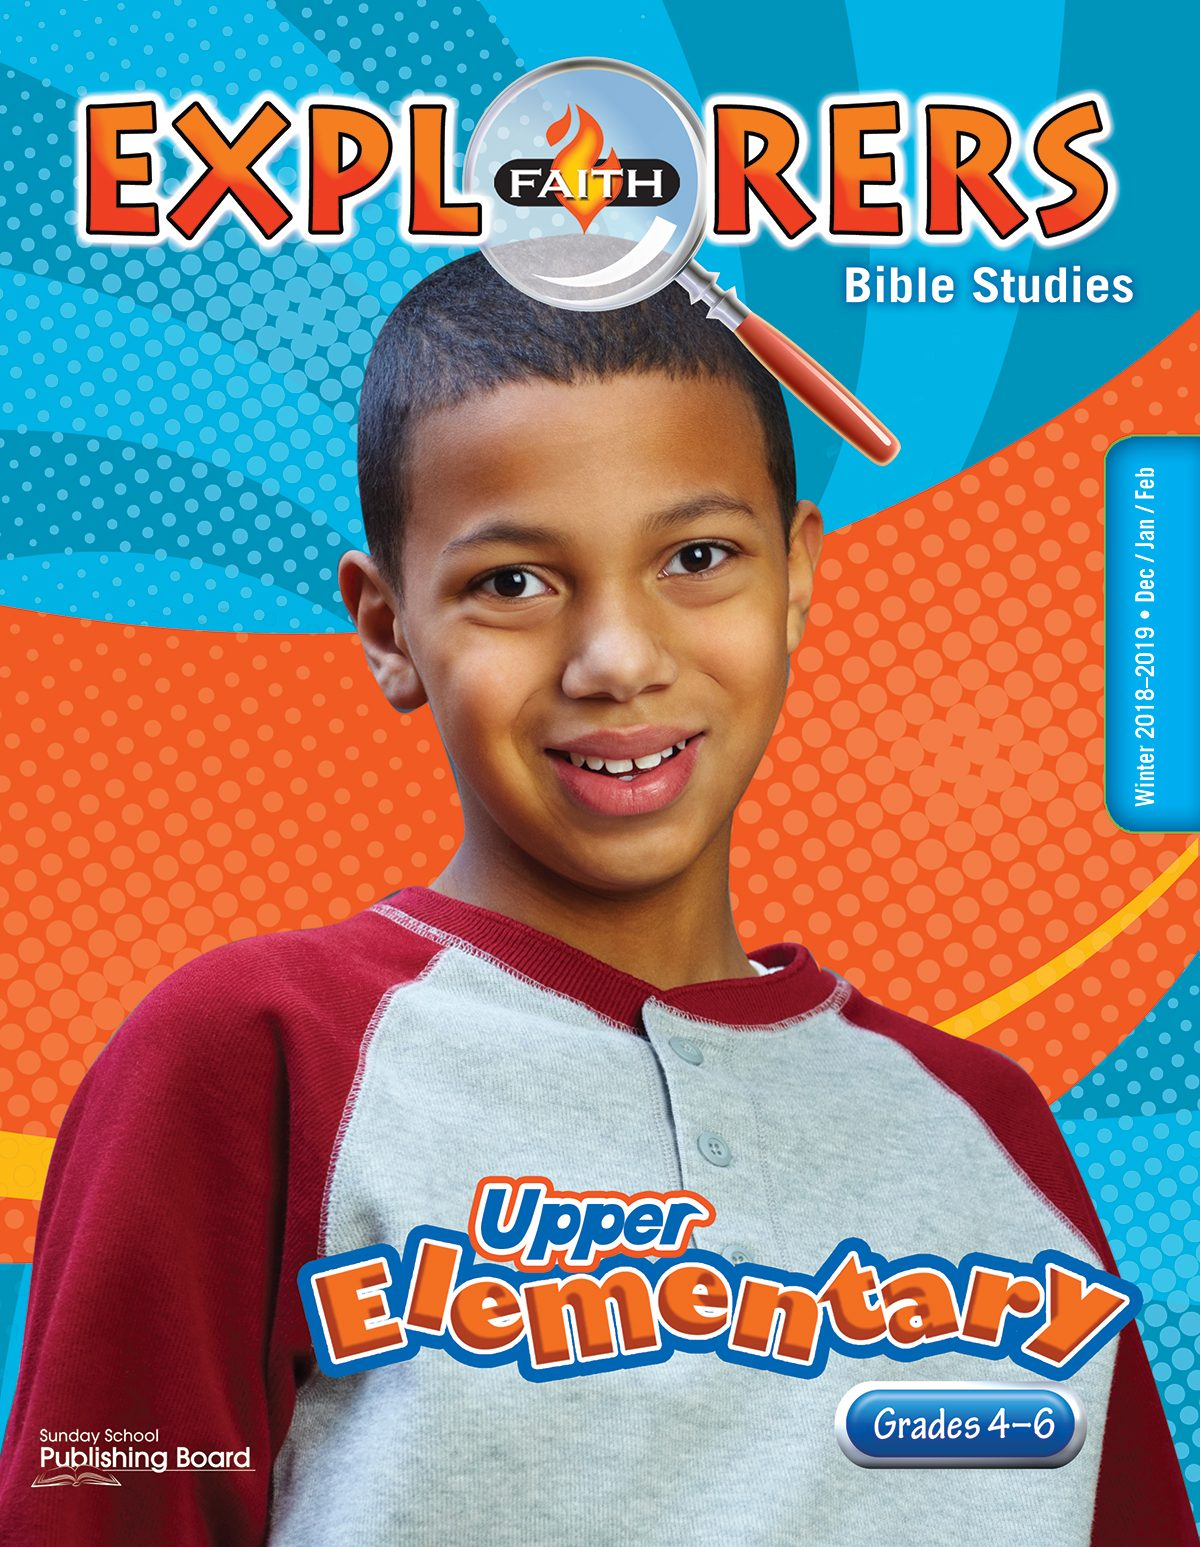 Faith Explorers Bible Studies, Upper Elementary for Grades 4-6 (Winter 2018)-Digital Edition